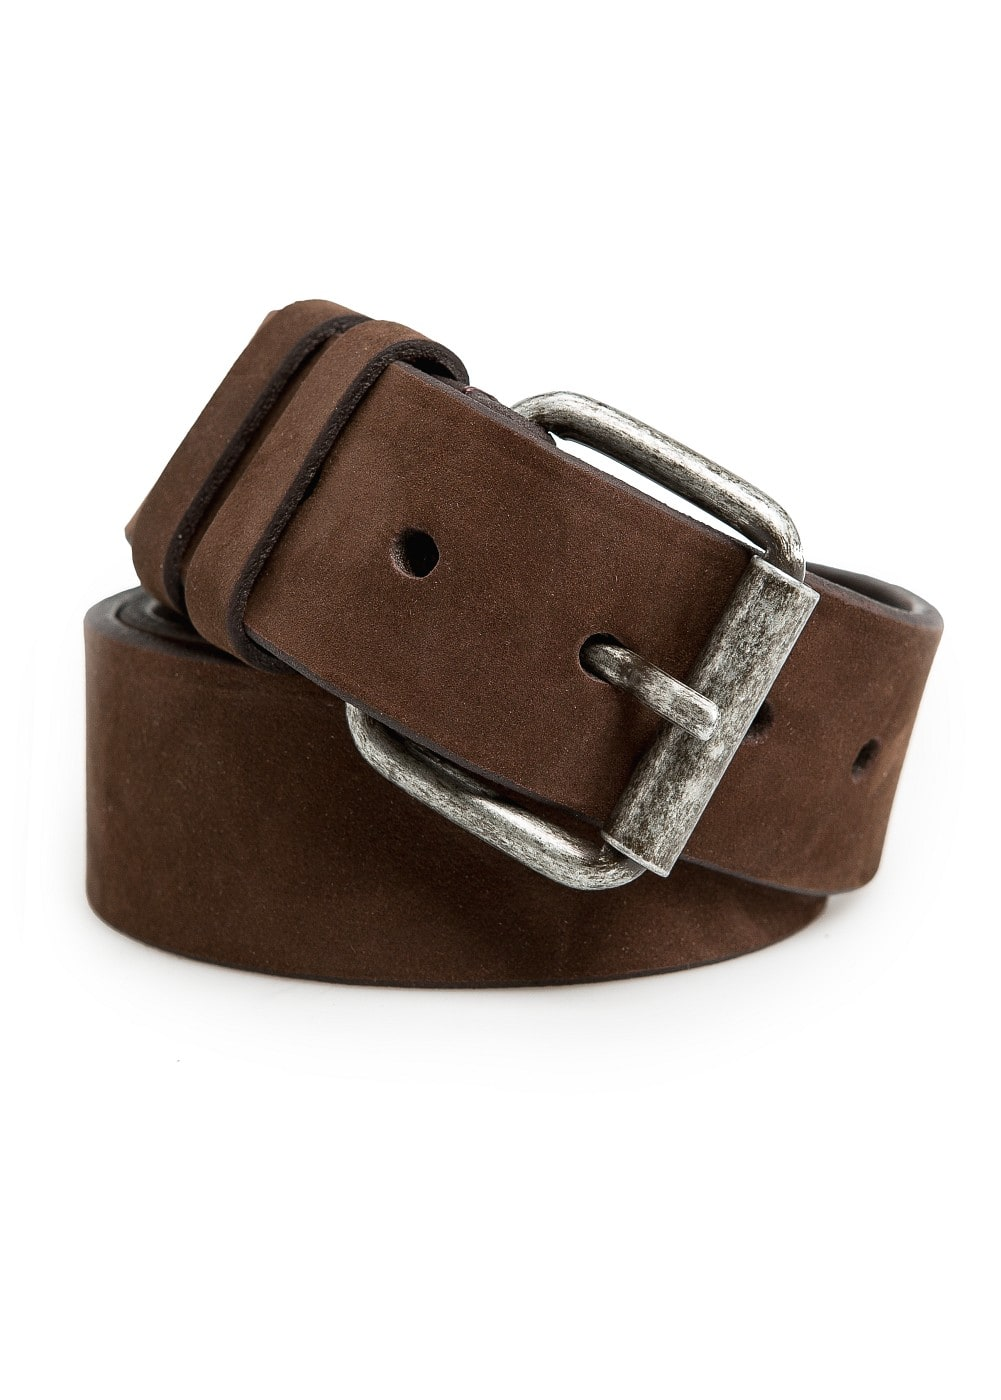 Double-keeper suede belt